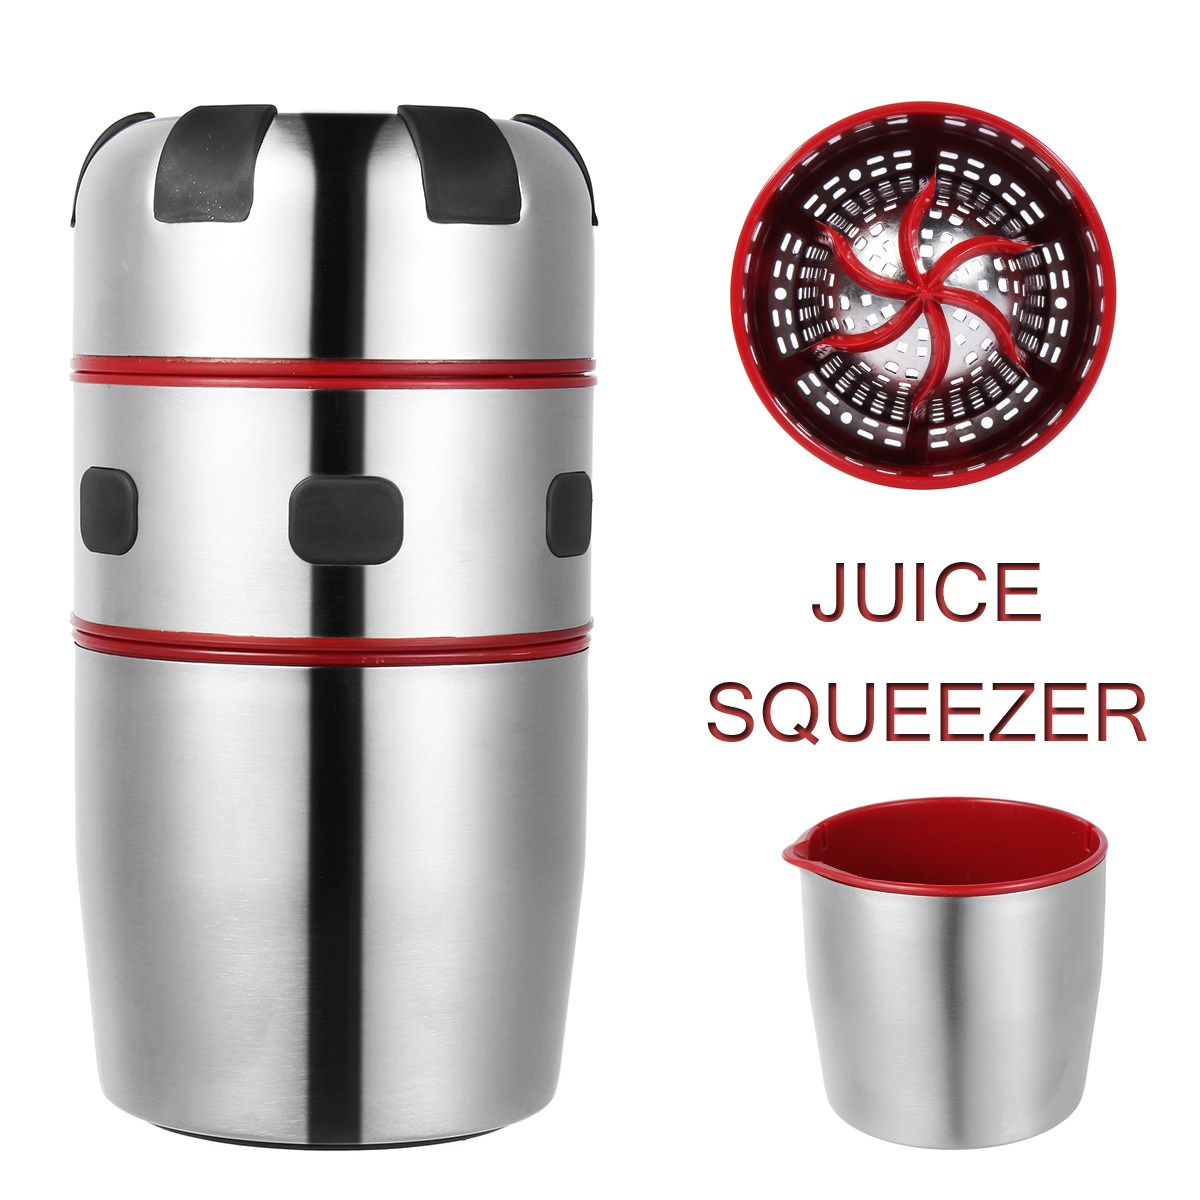 Portable Hand Press Mini Juicer Household Manual Juicer Juice Bottle Travel Small Fruit Squeezer Machine Juicer Tool for Bar healthy mini manual juicer with good price